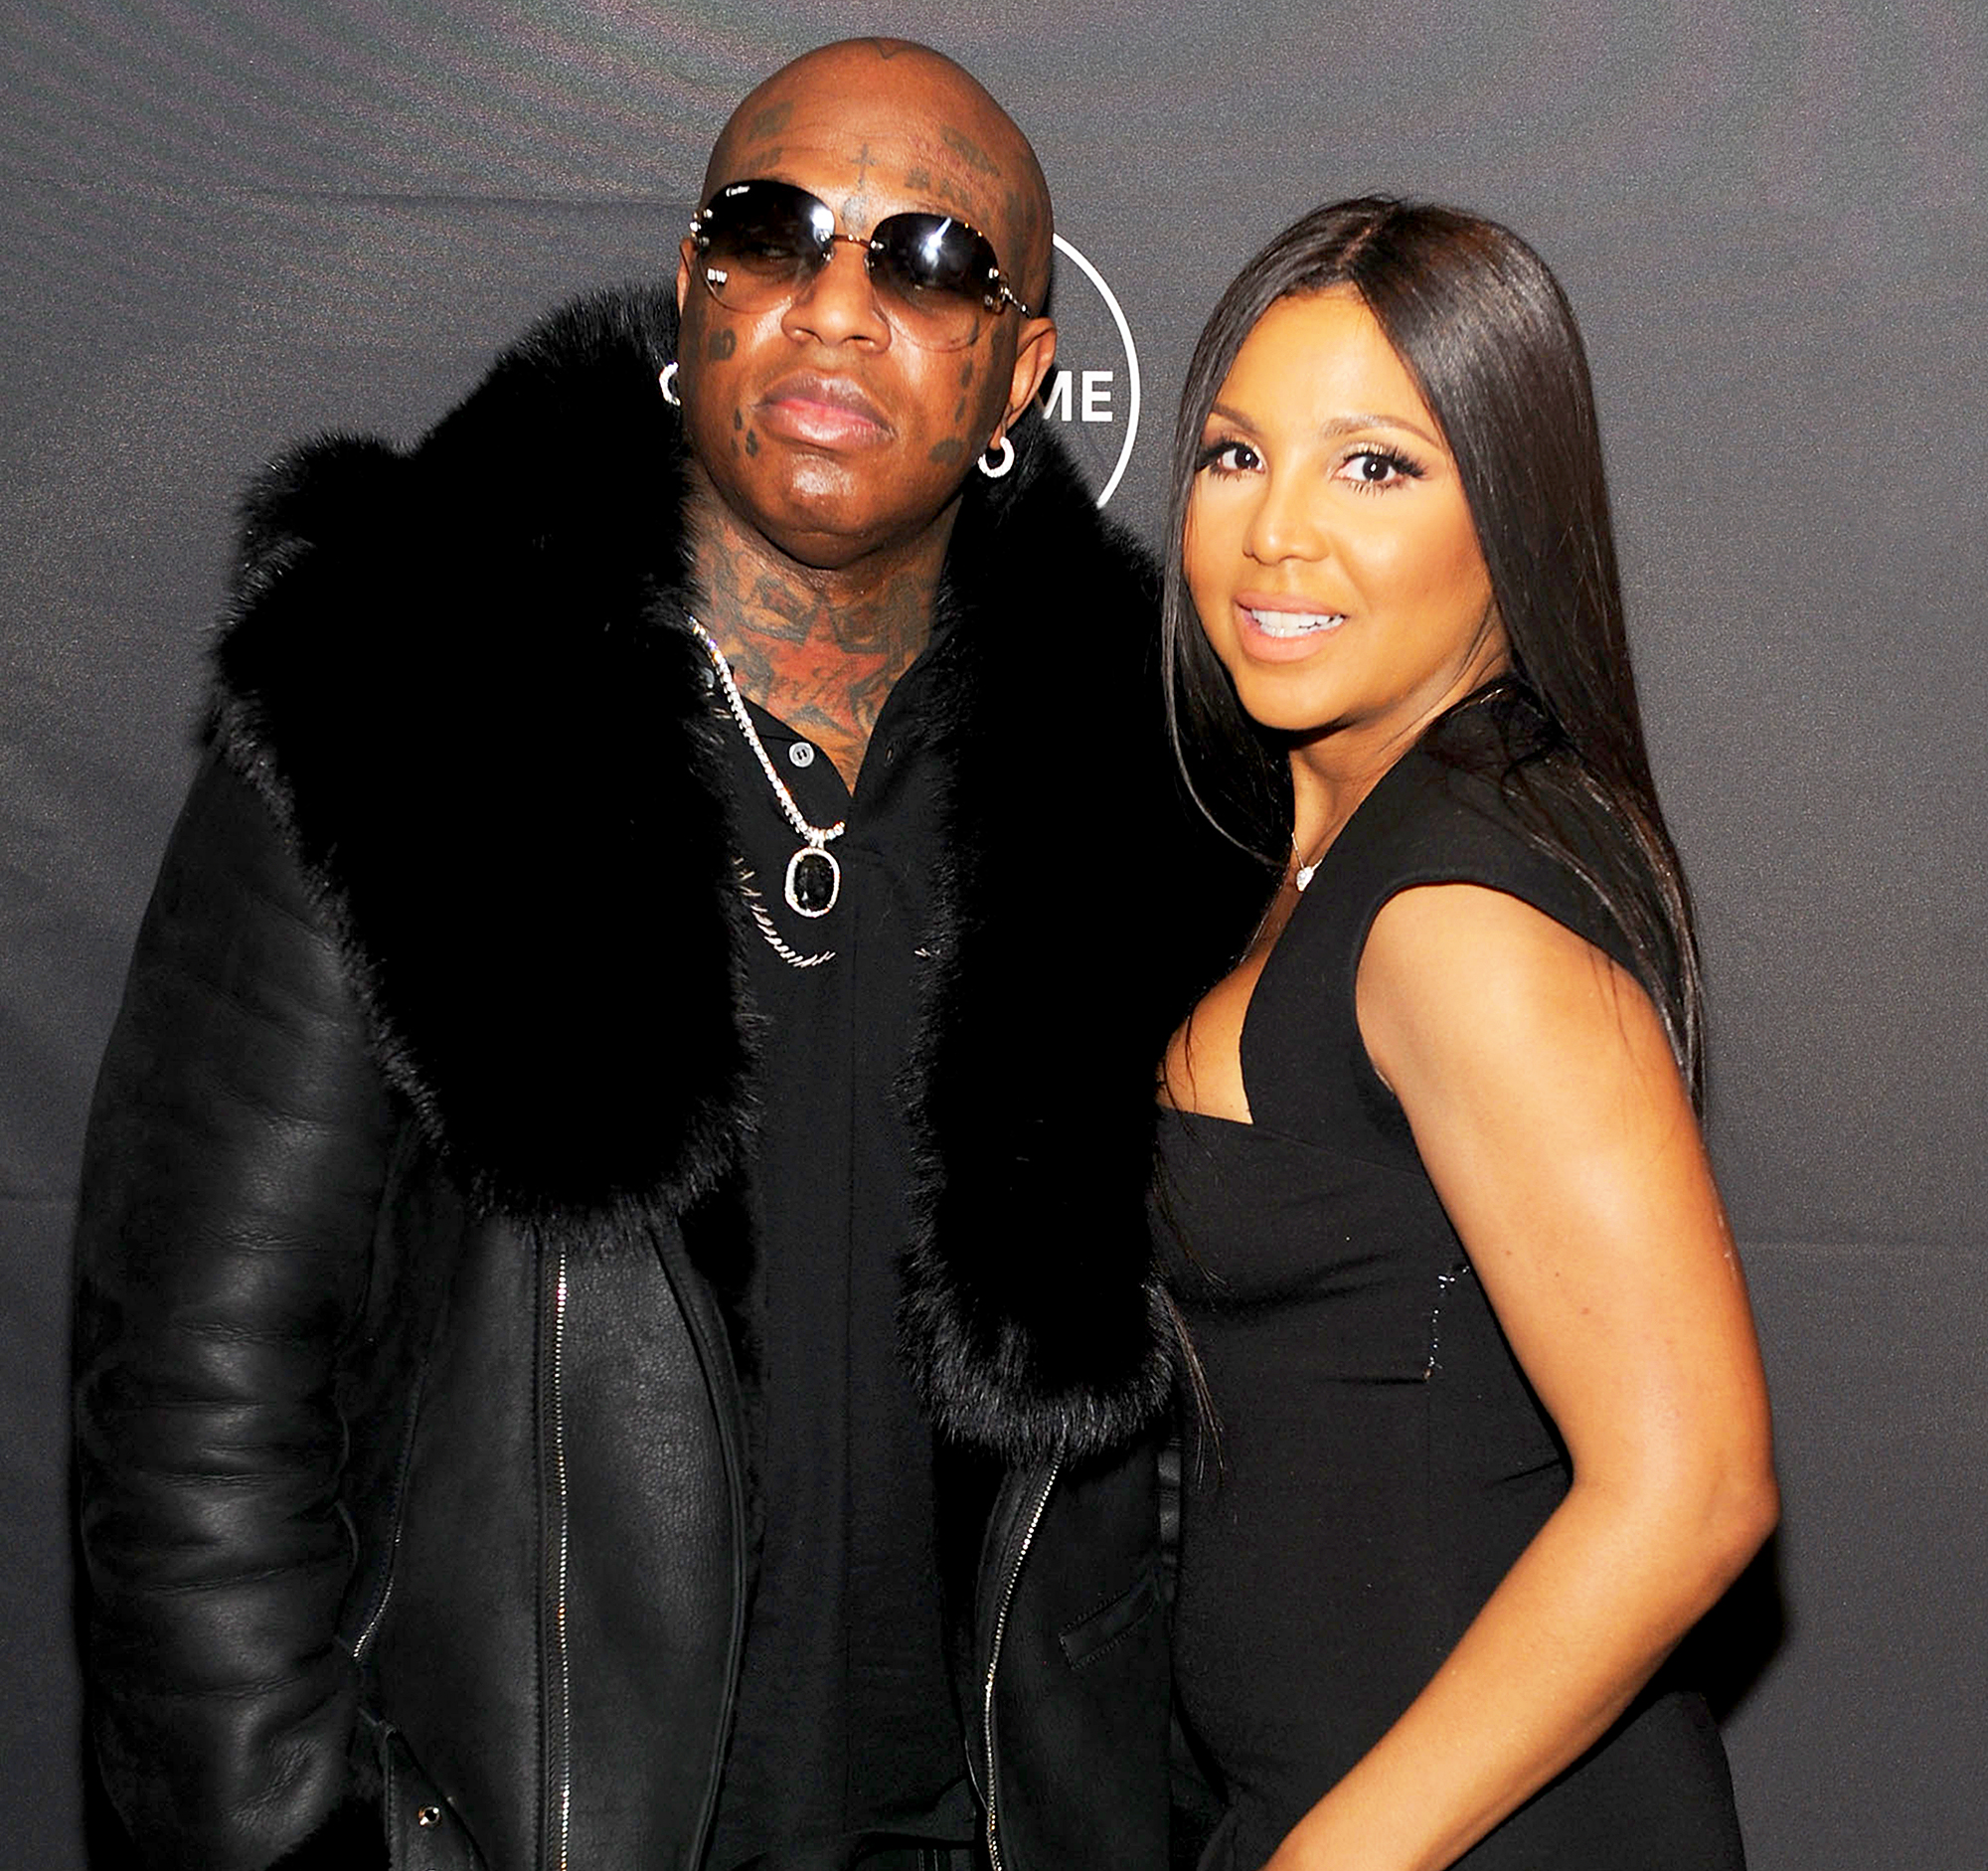 Toni Braxton Confirms She's Engaged To Birdman